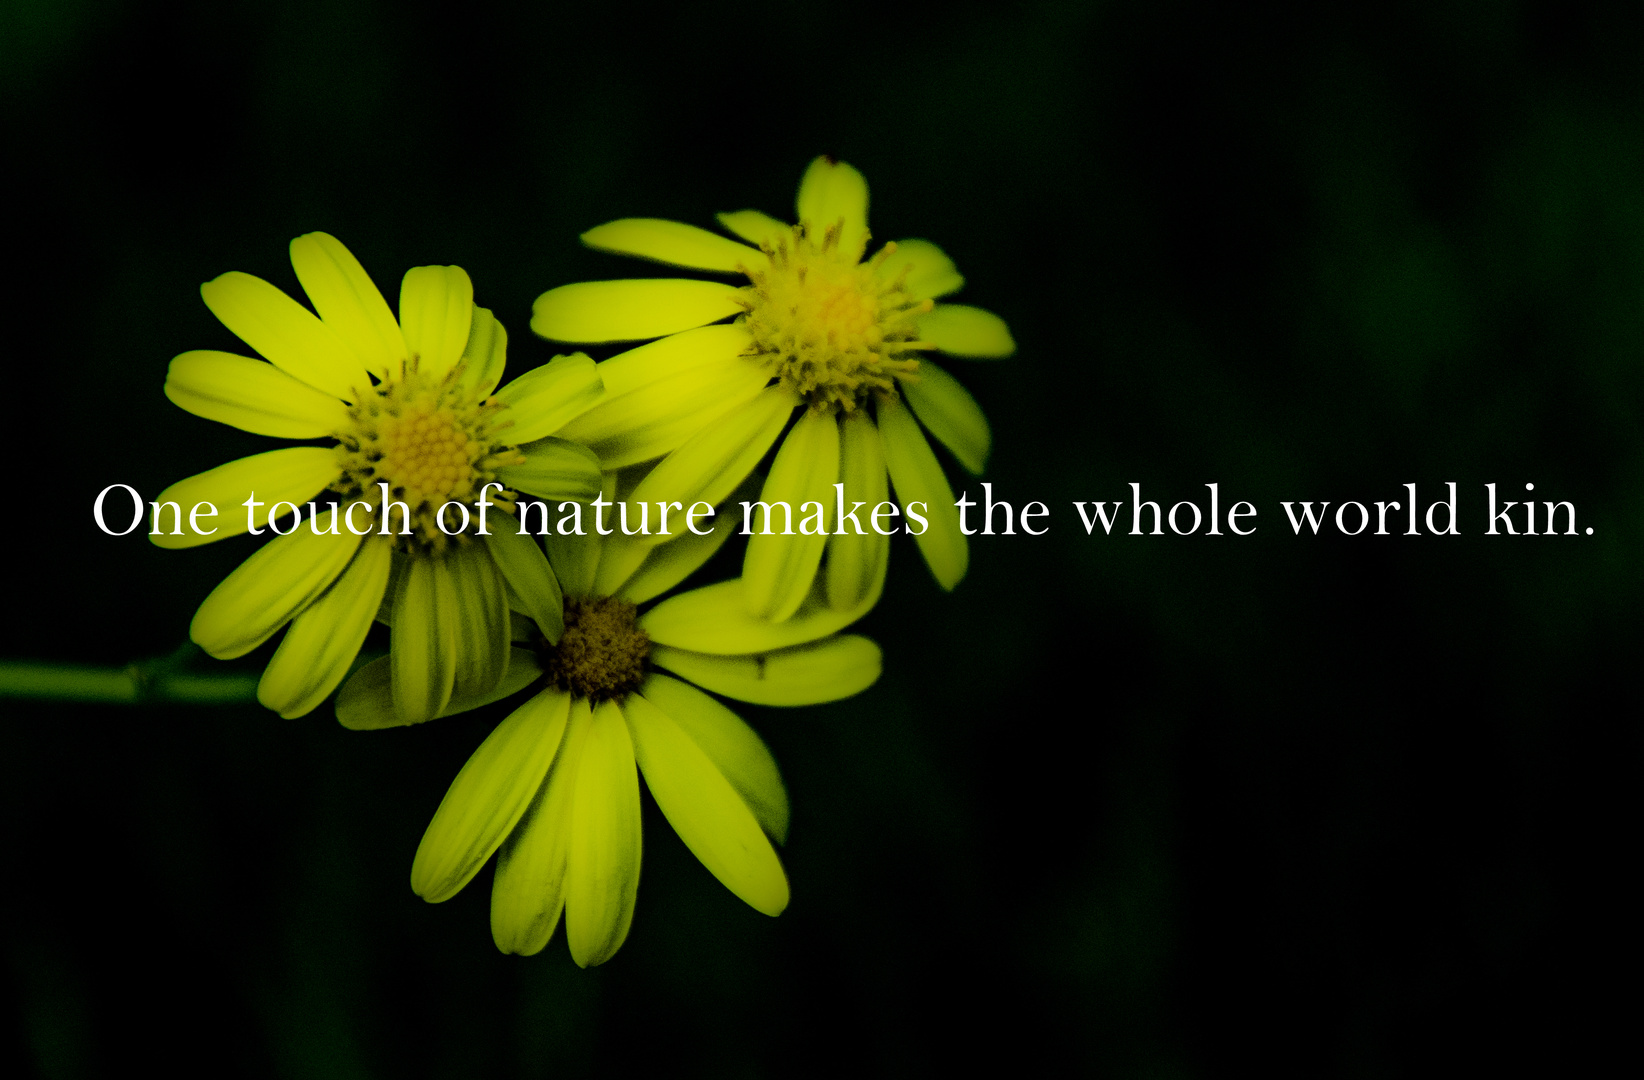 One touch of nature makes the whole world kin. - William Shakespeare